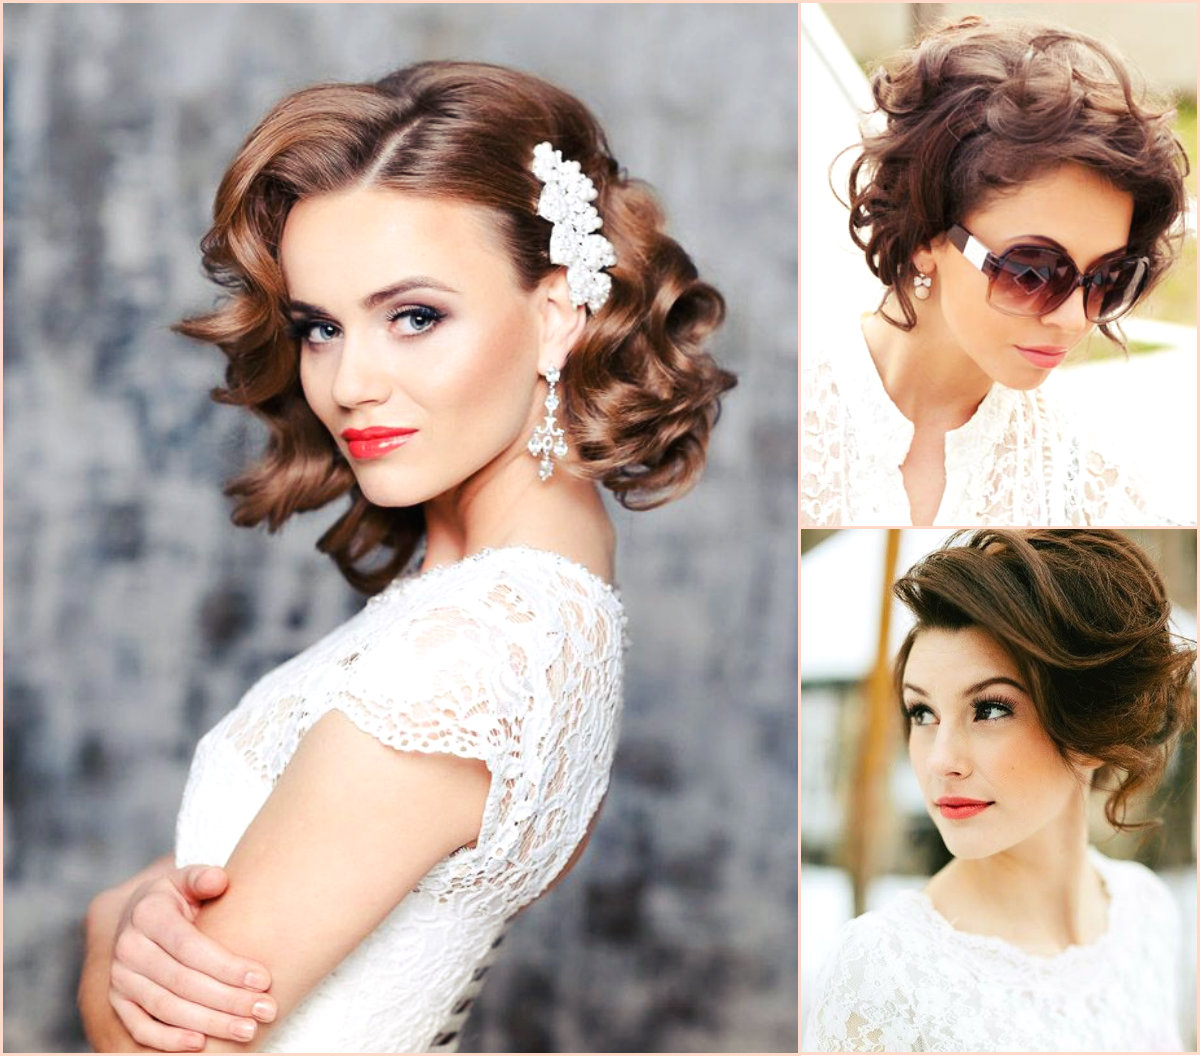 wedding hairstyles archives | page 2 of 4 | hairstyles 2017, hair